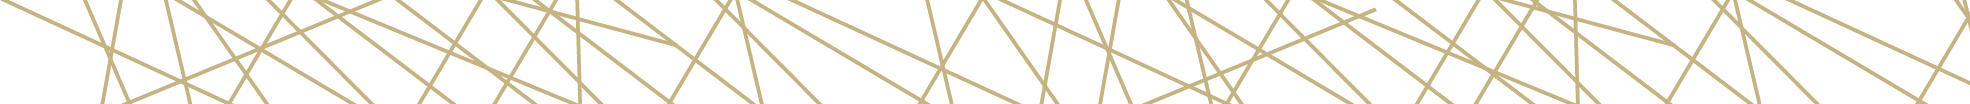 gold-lines-bar-01.png